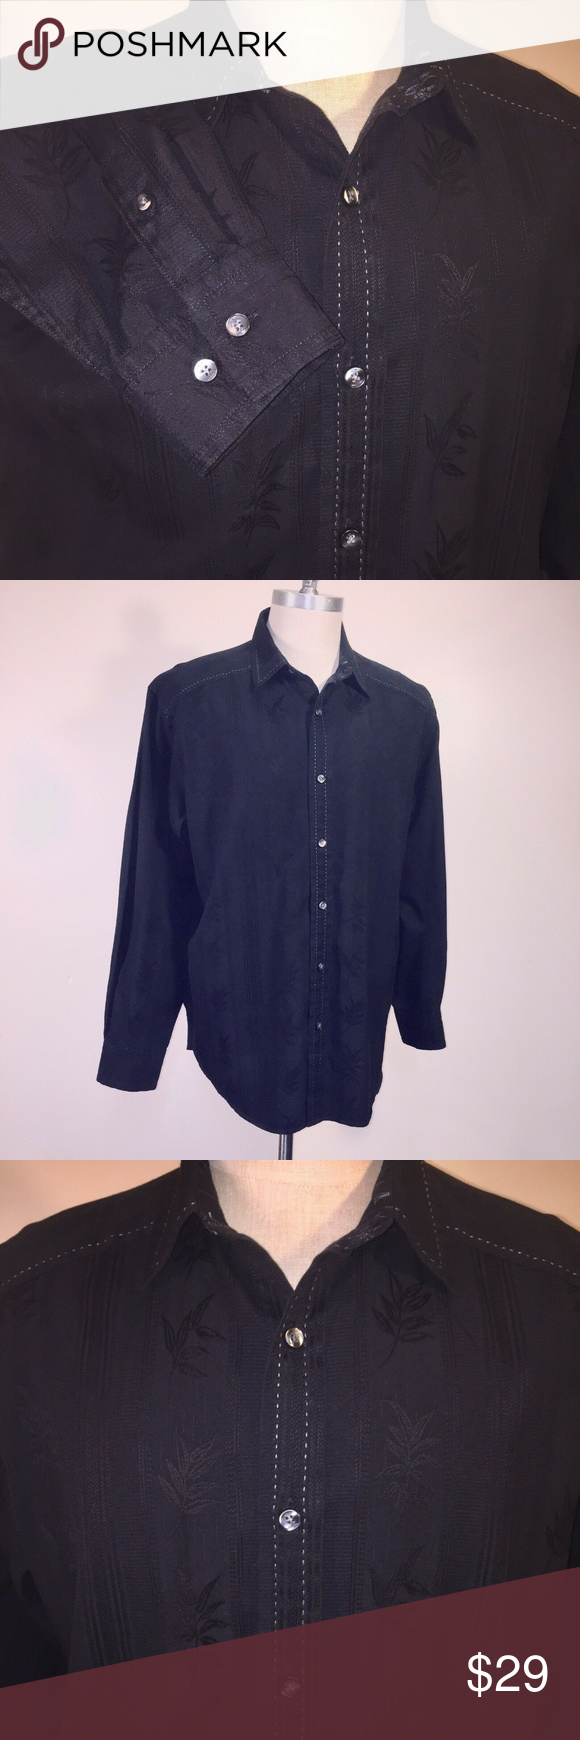 591e8569 Tommy Bahama Hawaiian Shirt Black Embroidered Tommy Bahama Button Up, Hawaiian  Shirt Men's L Black